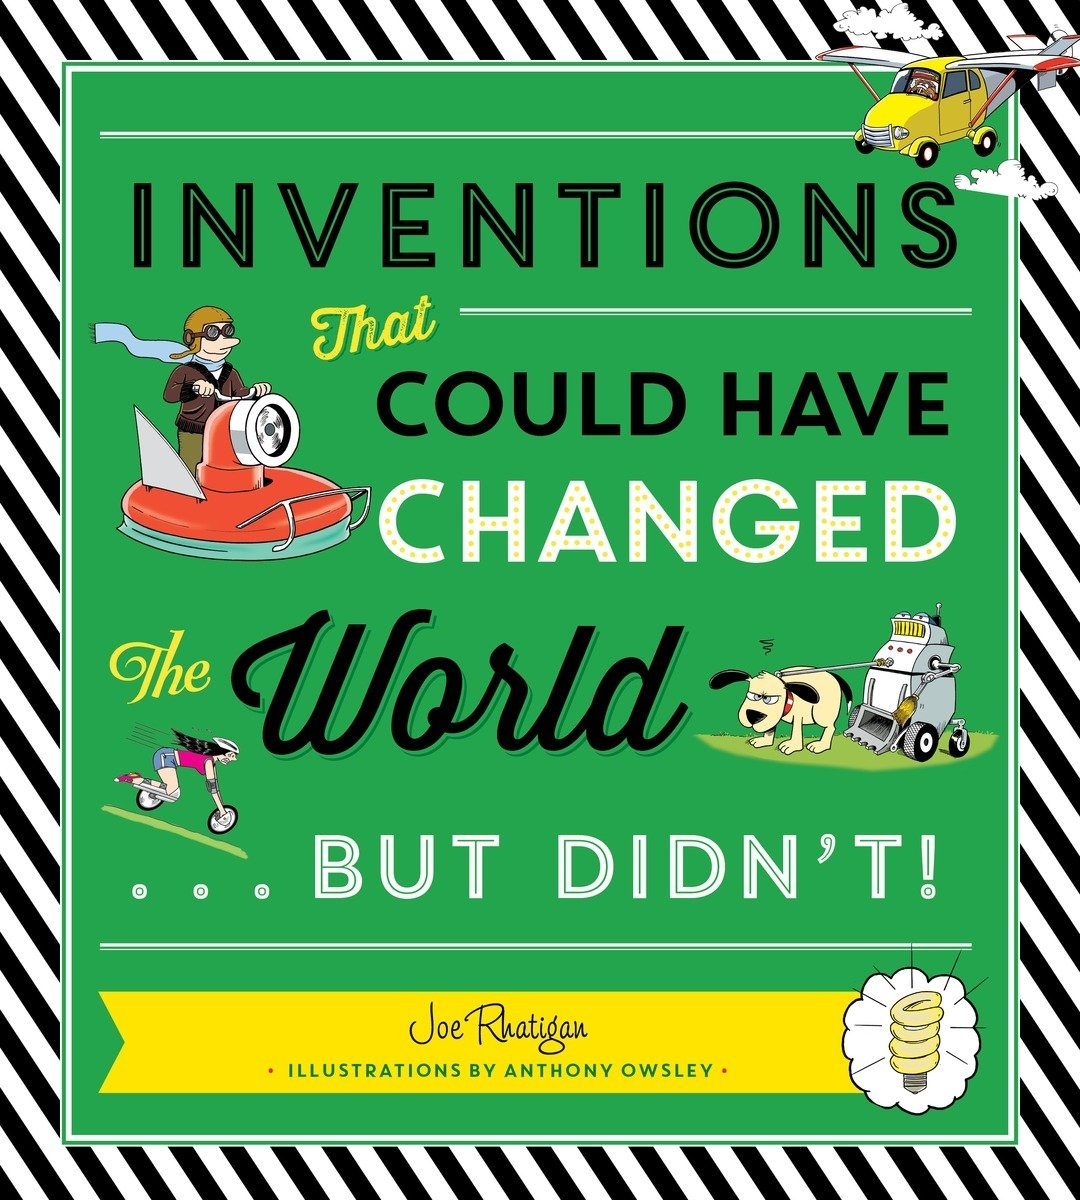 Inventions: That Could Have Changed the World...But Didn't! by Charlesbridge (Image #2)